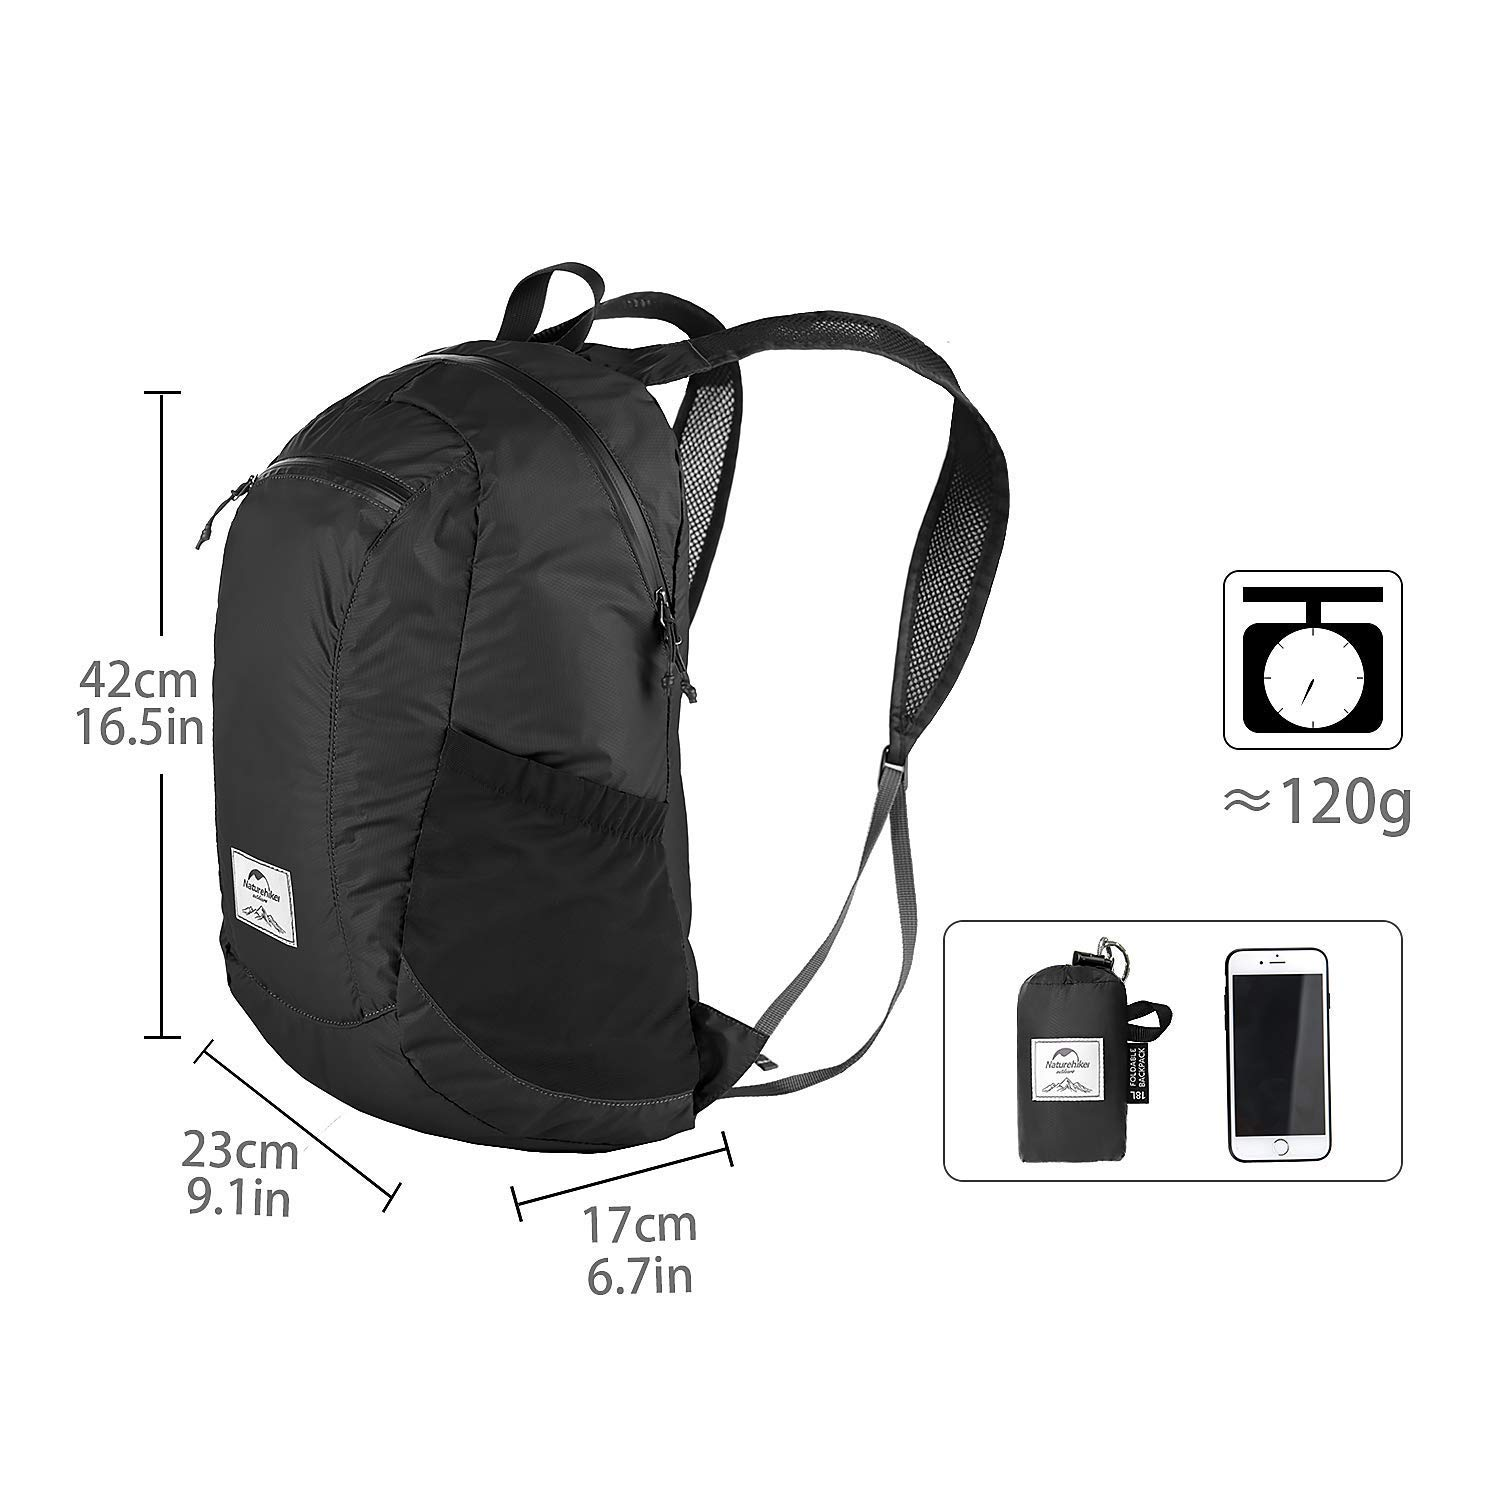 Naturehike 18L Ultralight Collapsible Backpack (Black) by Naturehike (Image #2)